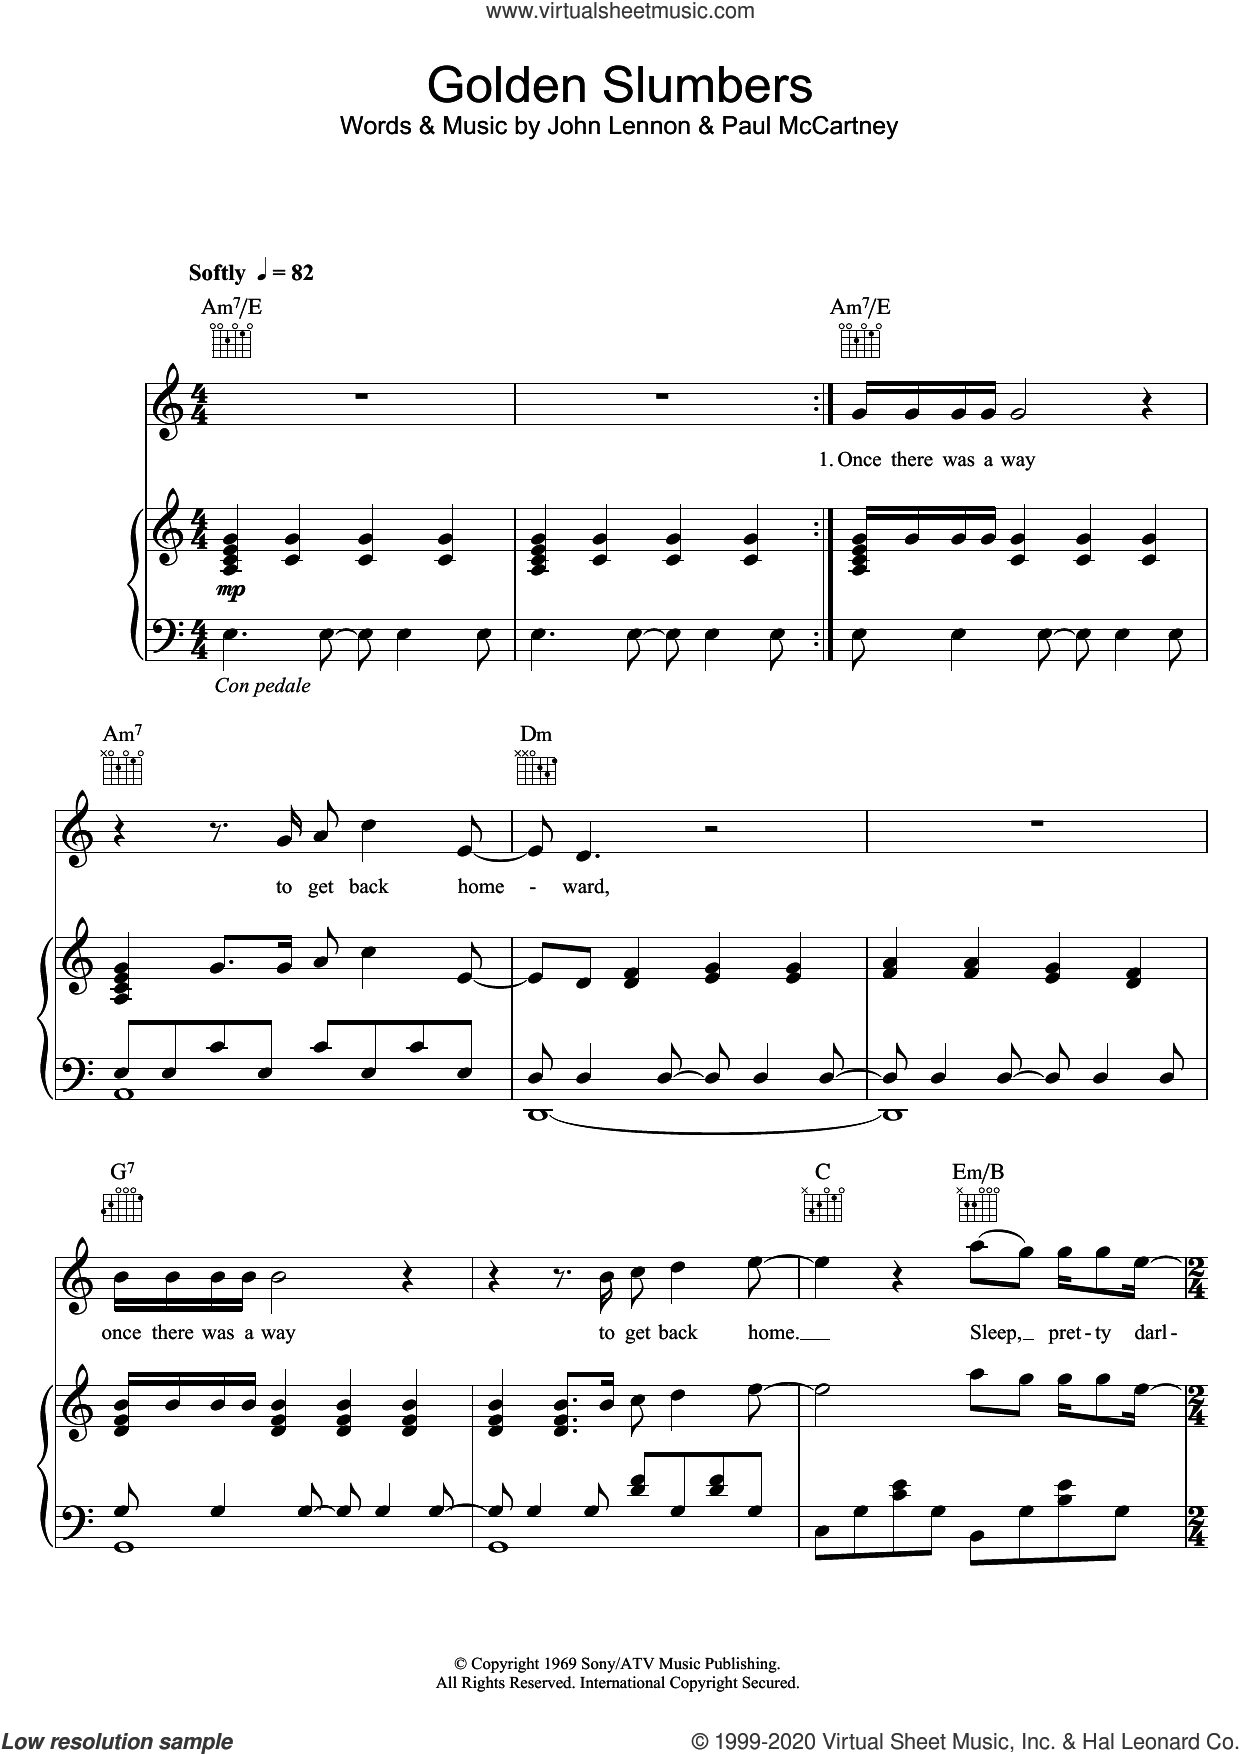 Golden Slumbers sheet music for voice, piano or guitar by Elbow, John Lennon and Paul McCartney, intermediate skill level